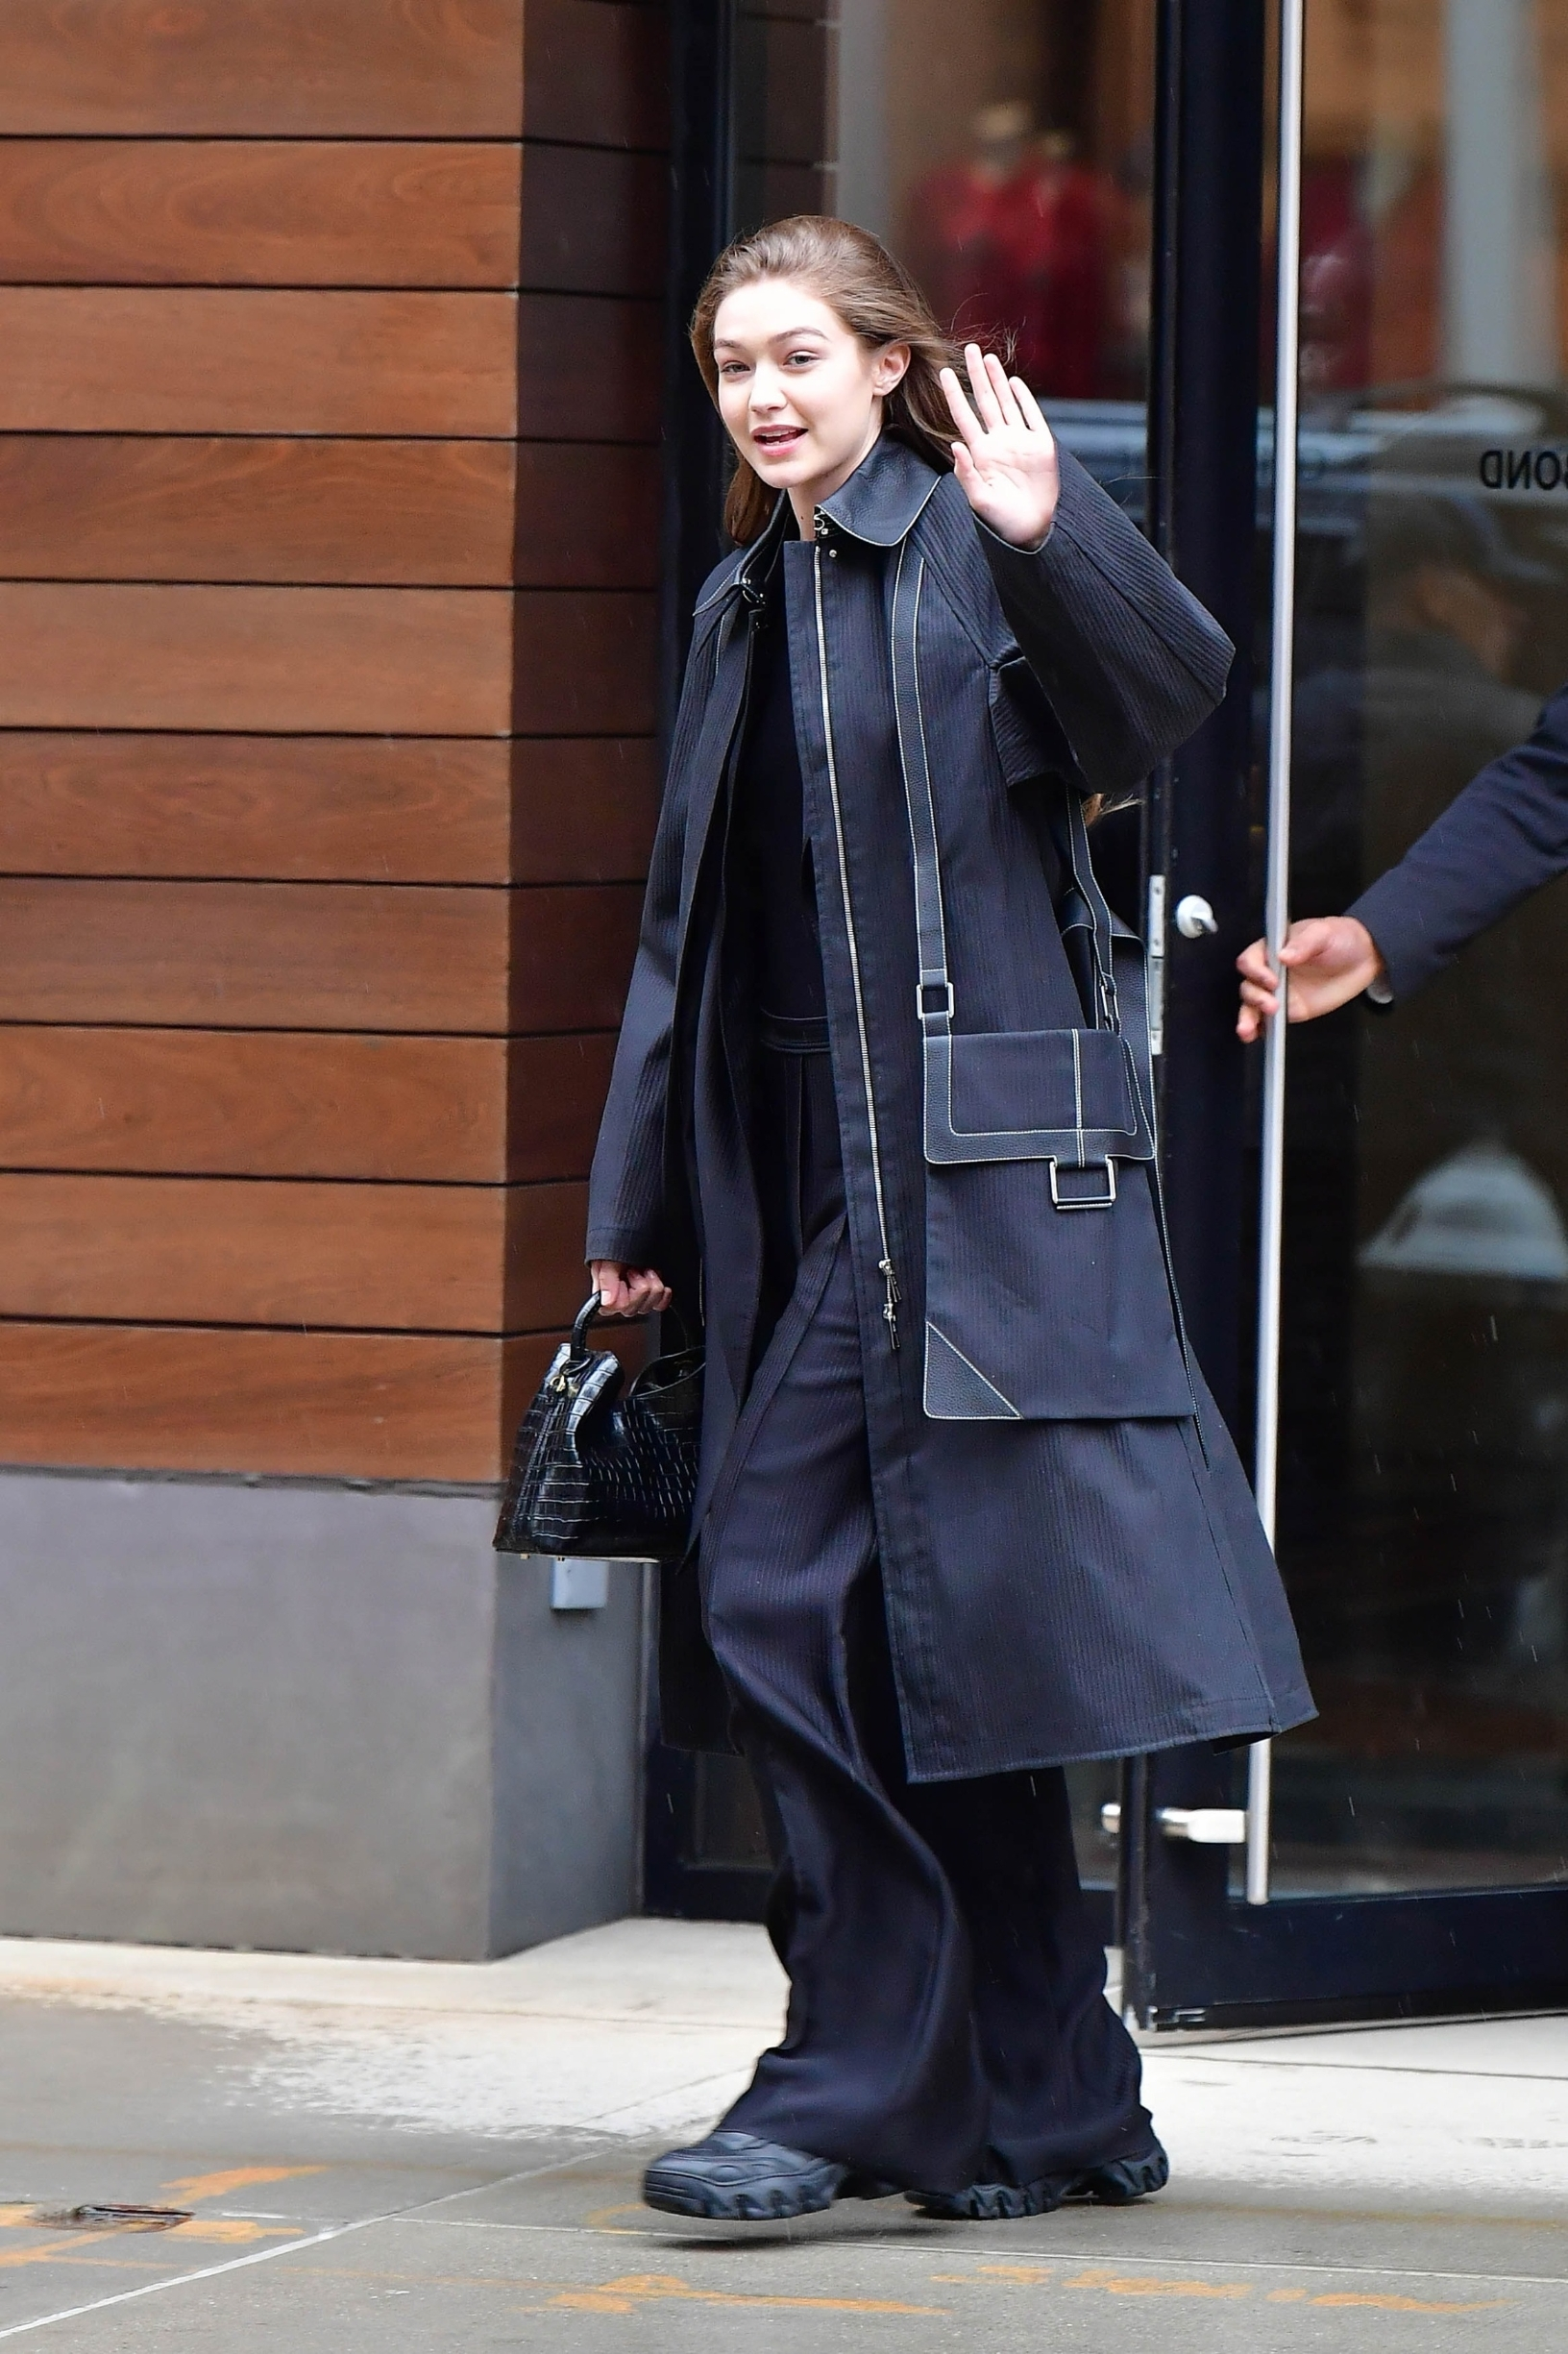 New York, Ny  - Gigi Hadid waving to the photographers  BACKGRID USA 10 FEBRUARY 2020, Image: 497651992, License: Rights-managed, Restrictions: RIGHTS: WORLDWIDE EXCEPT IN FRANCE, GERMANY, POLAND, Model Release: no, Credit line: Skyler2018 / BACKGRID / Backgrid USA / Profimedia